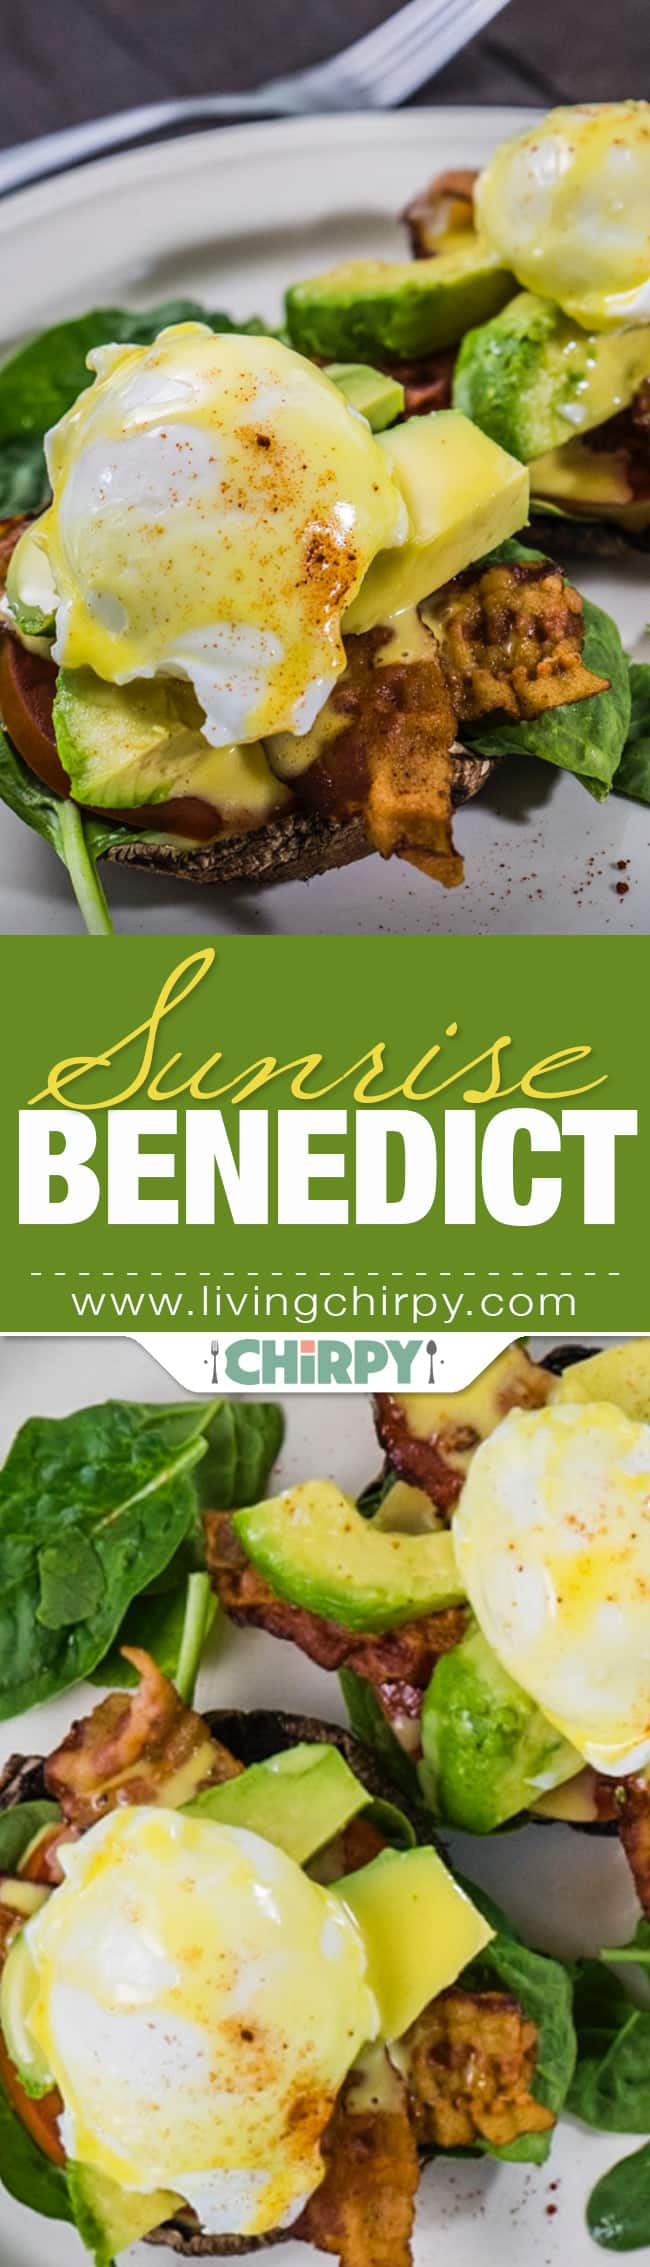 Low Carb Sunrise Benedict